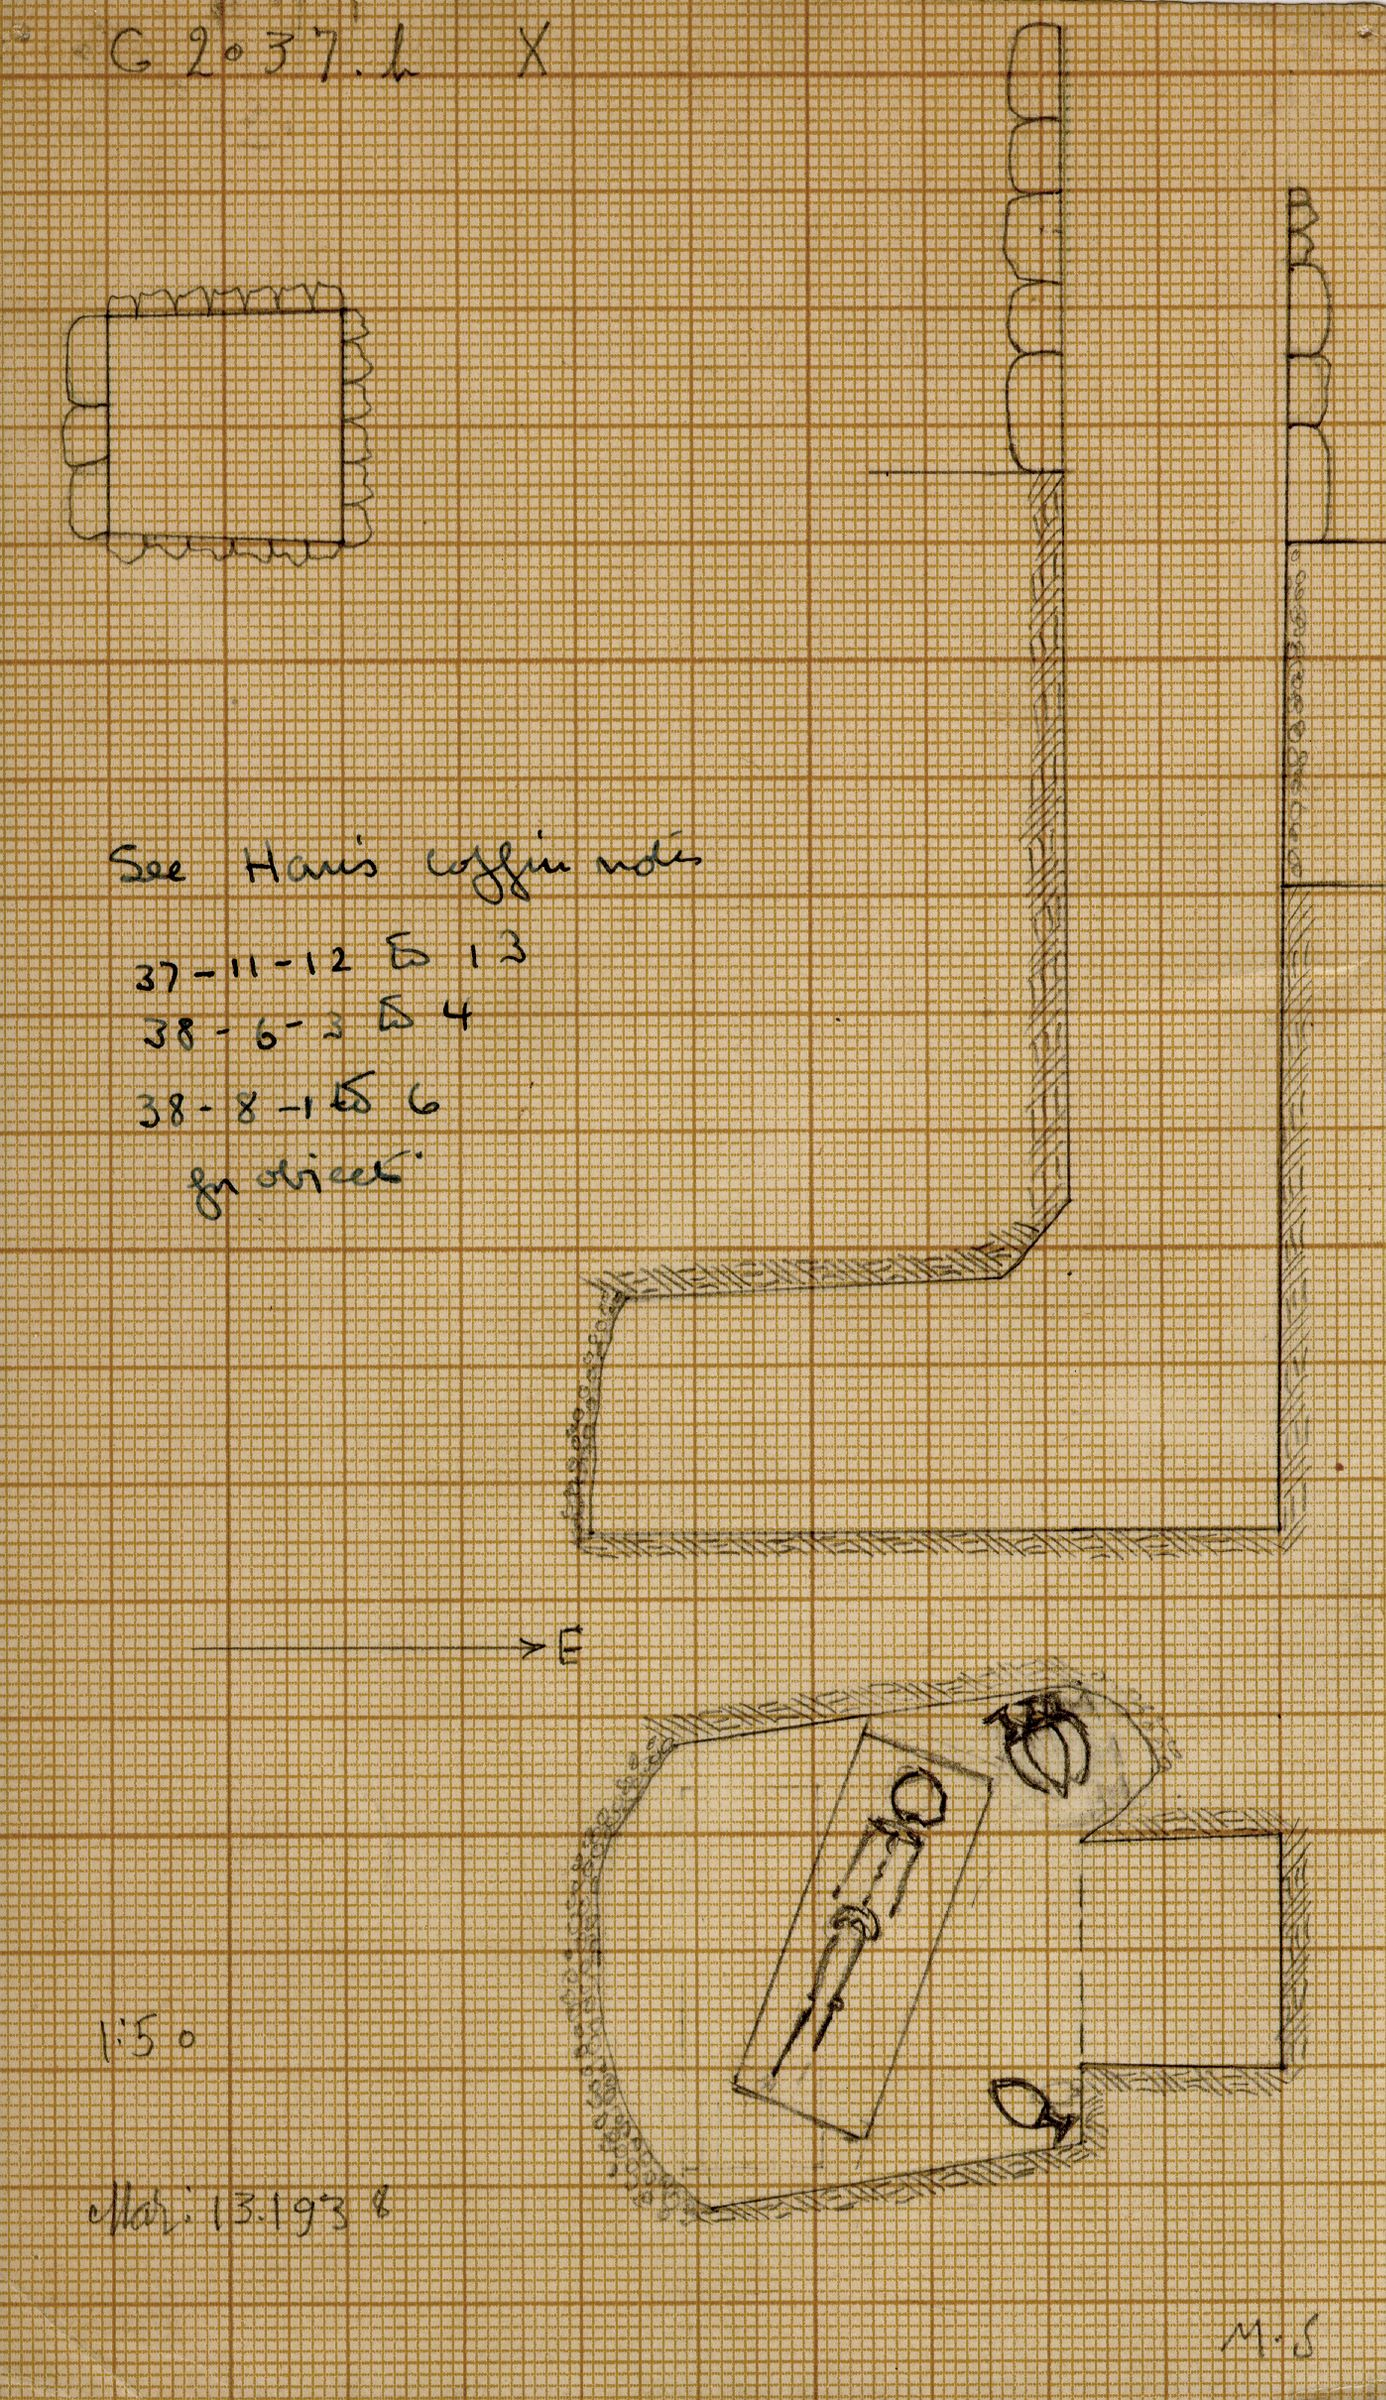 Maps and plans: G 2037b, Shaft X